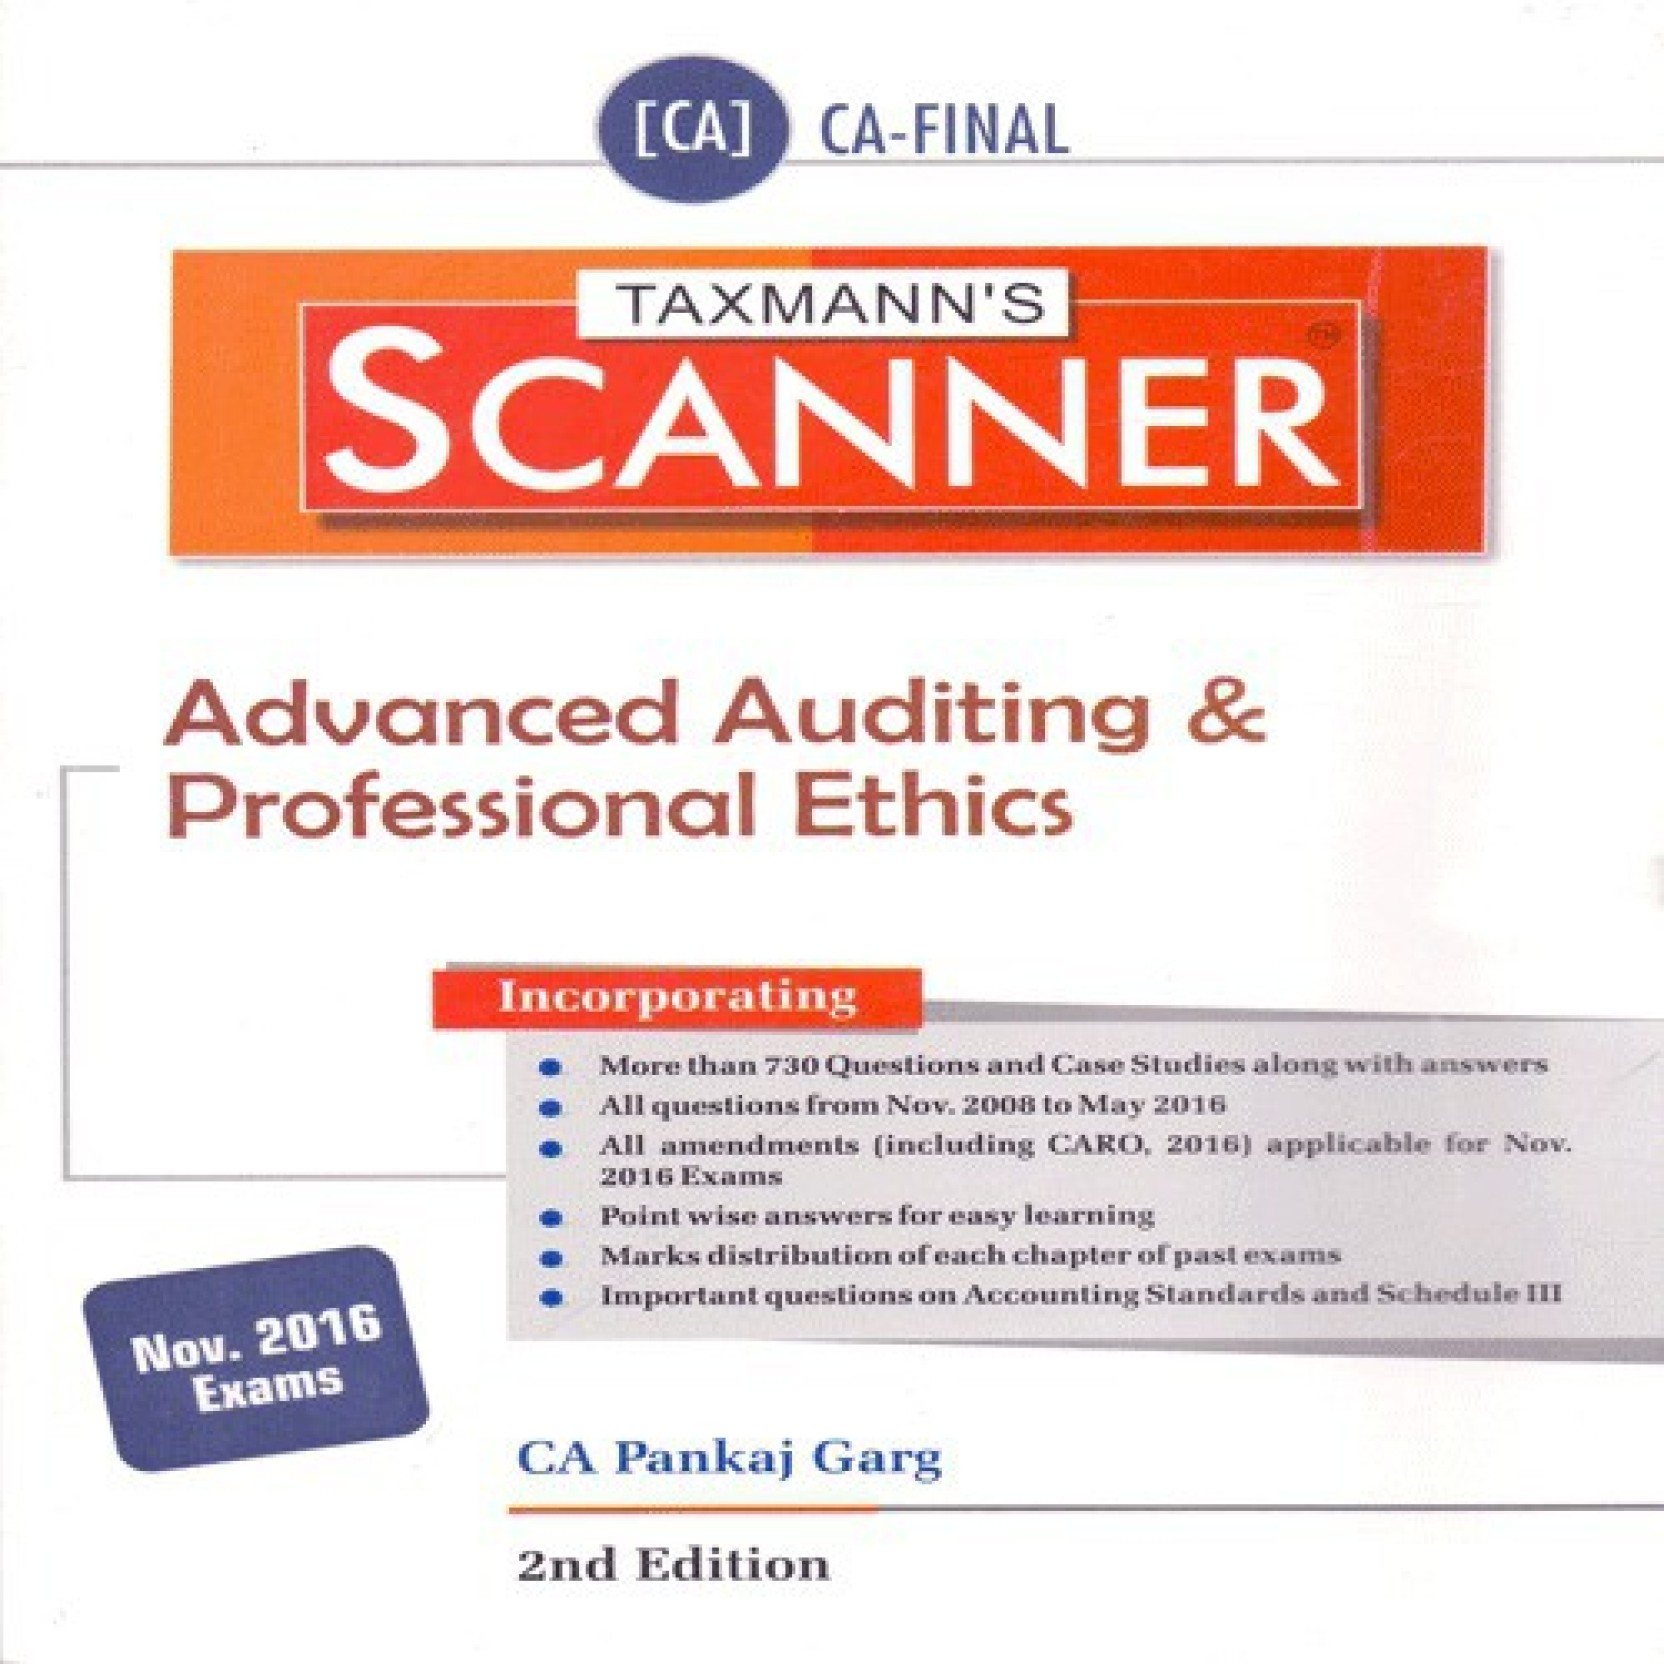 importance of professional ethics in auditing